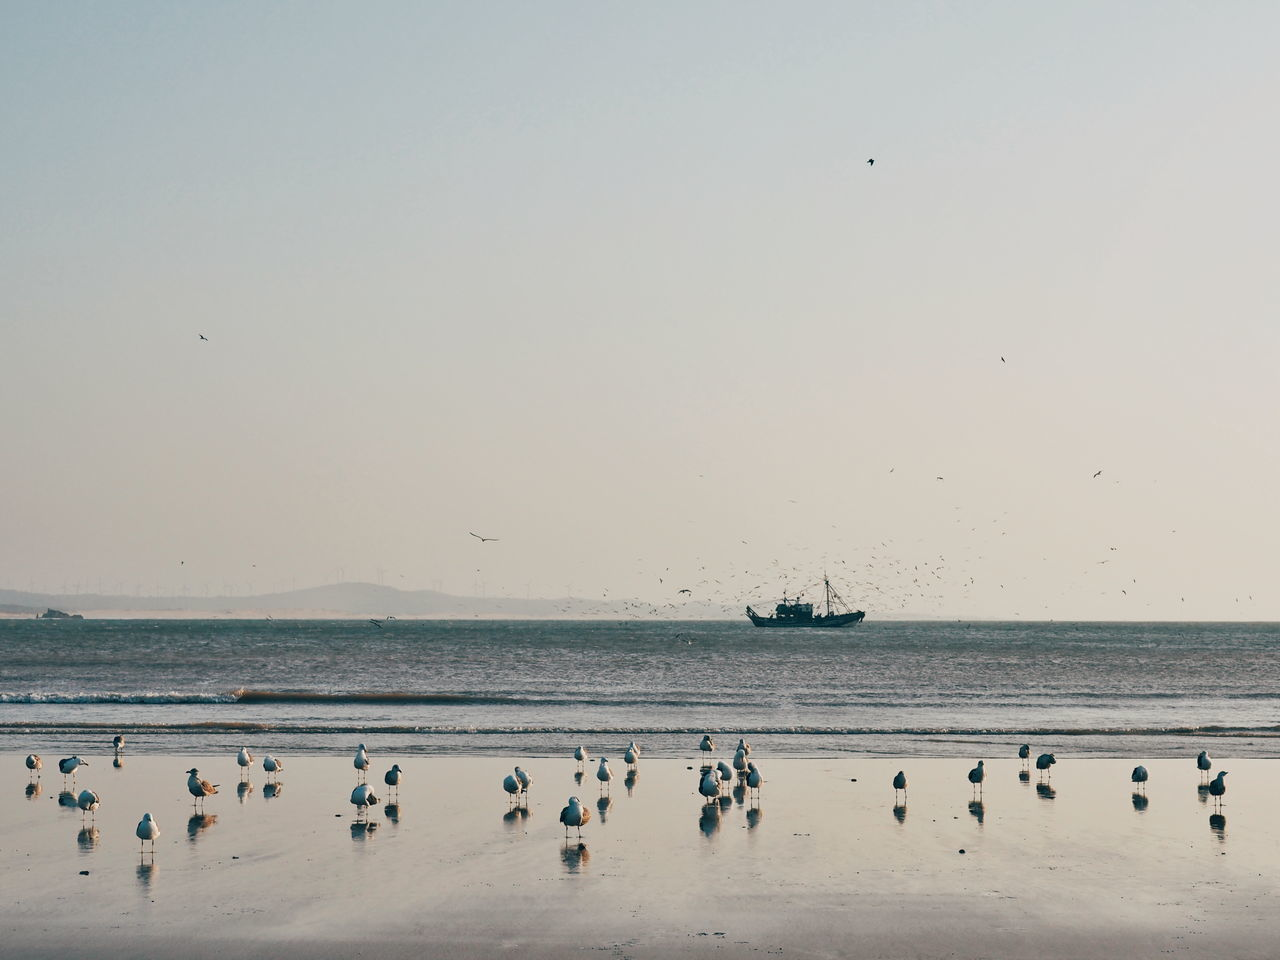 Flying Beach Sea Bird Animal Wildlife Animals In The Wild Large Group Of Animals Nature Sunset Scenics Flock Of Birds Outdoors Water Sand Beauty In Nature Animal Themes Sky Seagull Travel Destinations Essaouira Morocco Morocco 🇲🇦 Coastline Trawler Fishing Boat